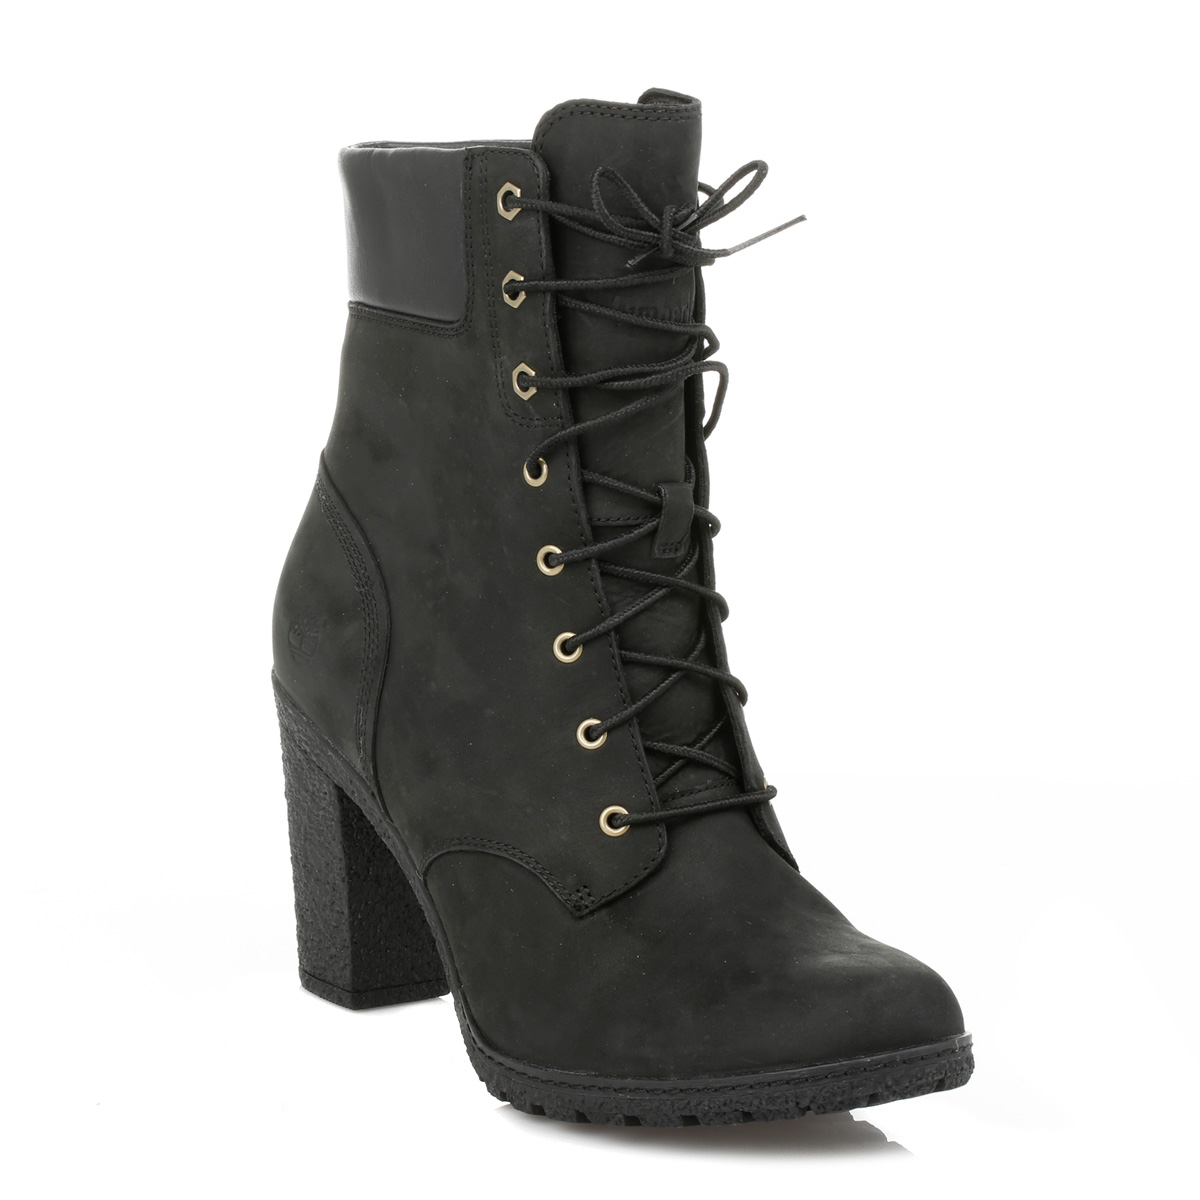 Black Wedge Boots. Clothing. Shoes. Black Wedge Boots. Showing 48 of results that match your query. Product - Women Black Rubber Rain Boots, Wedge Heel Design w/ Cotton Lining. Product Image. Price $ 99 - $ Product Title. Women Black Rubber Rain Boots, Wedge Heel Design w/ Cotton Lining.